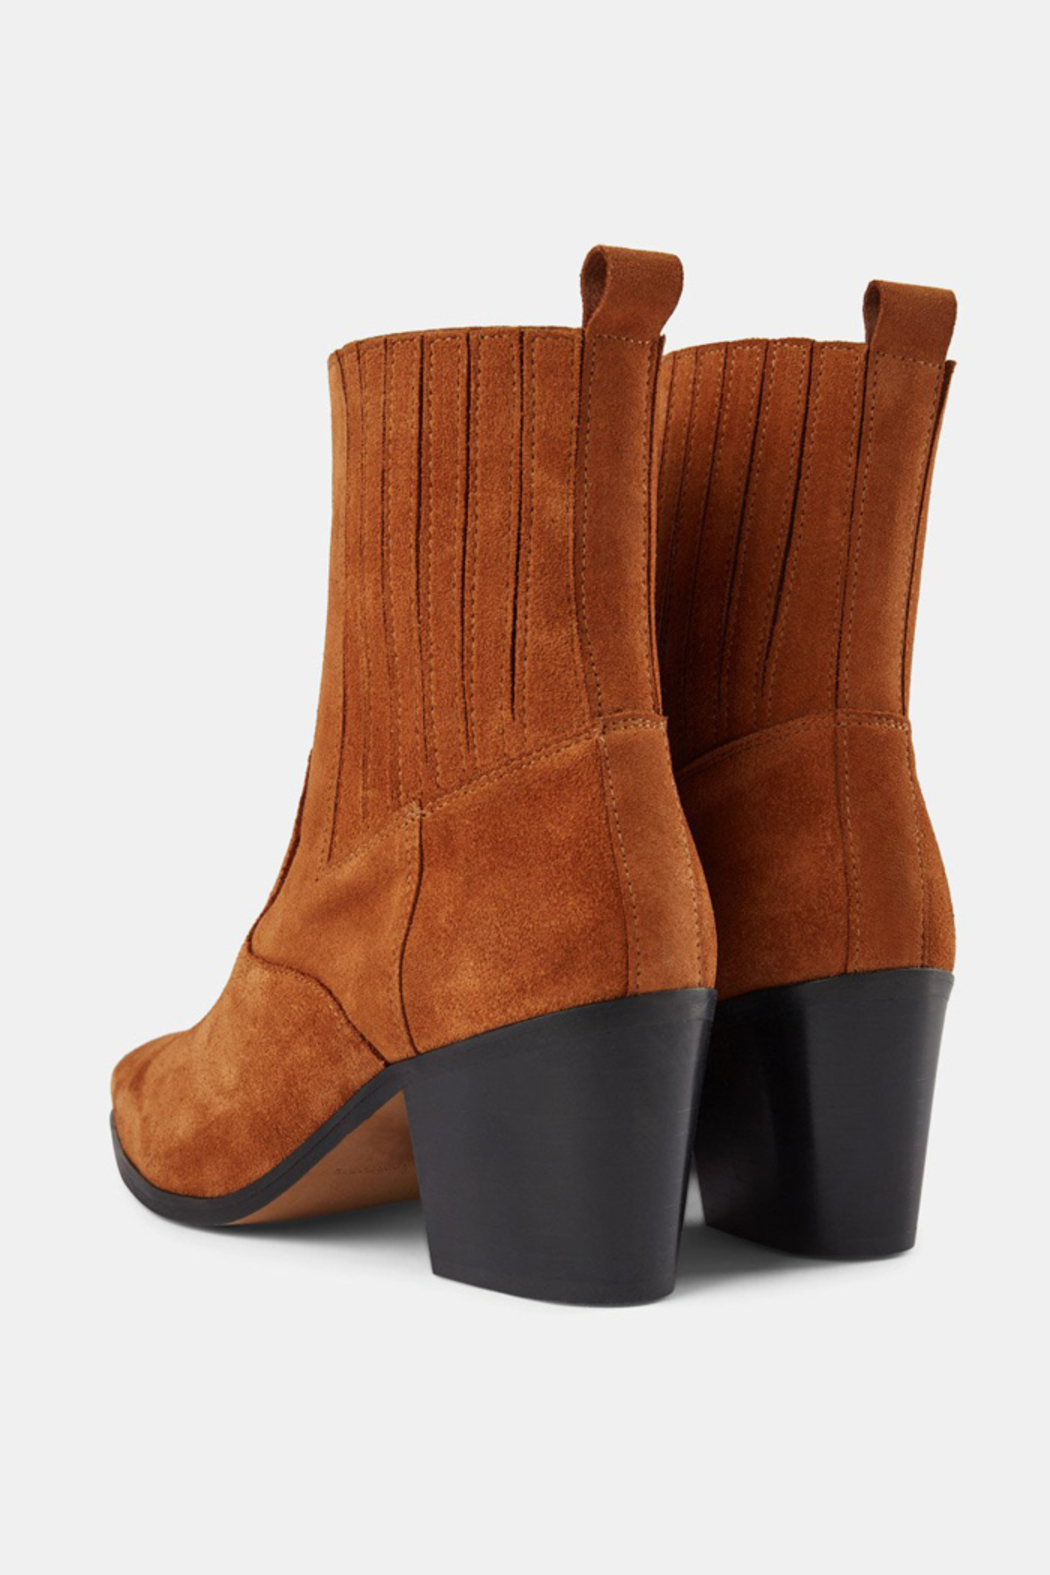 Shoe the Bear BLOCK HEEL SUEDE ANKLE BOOT - Side Cropped Image